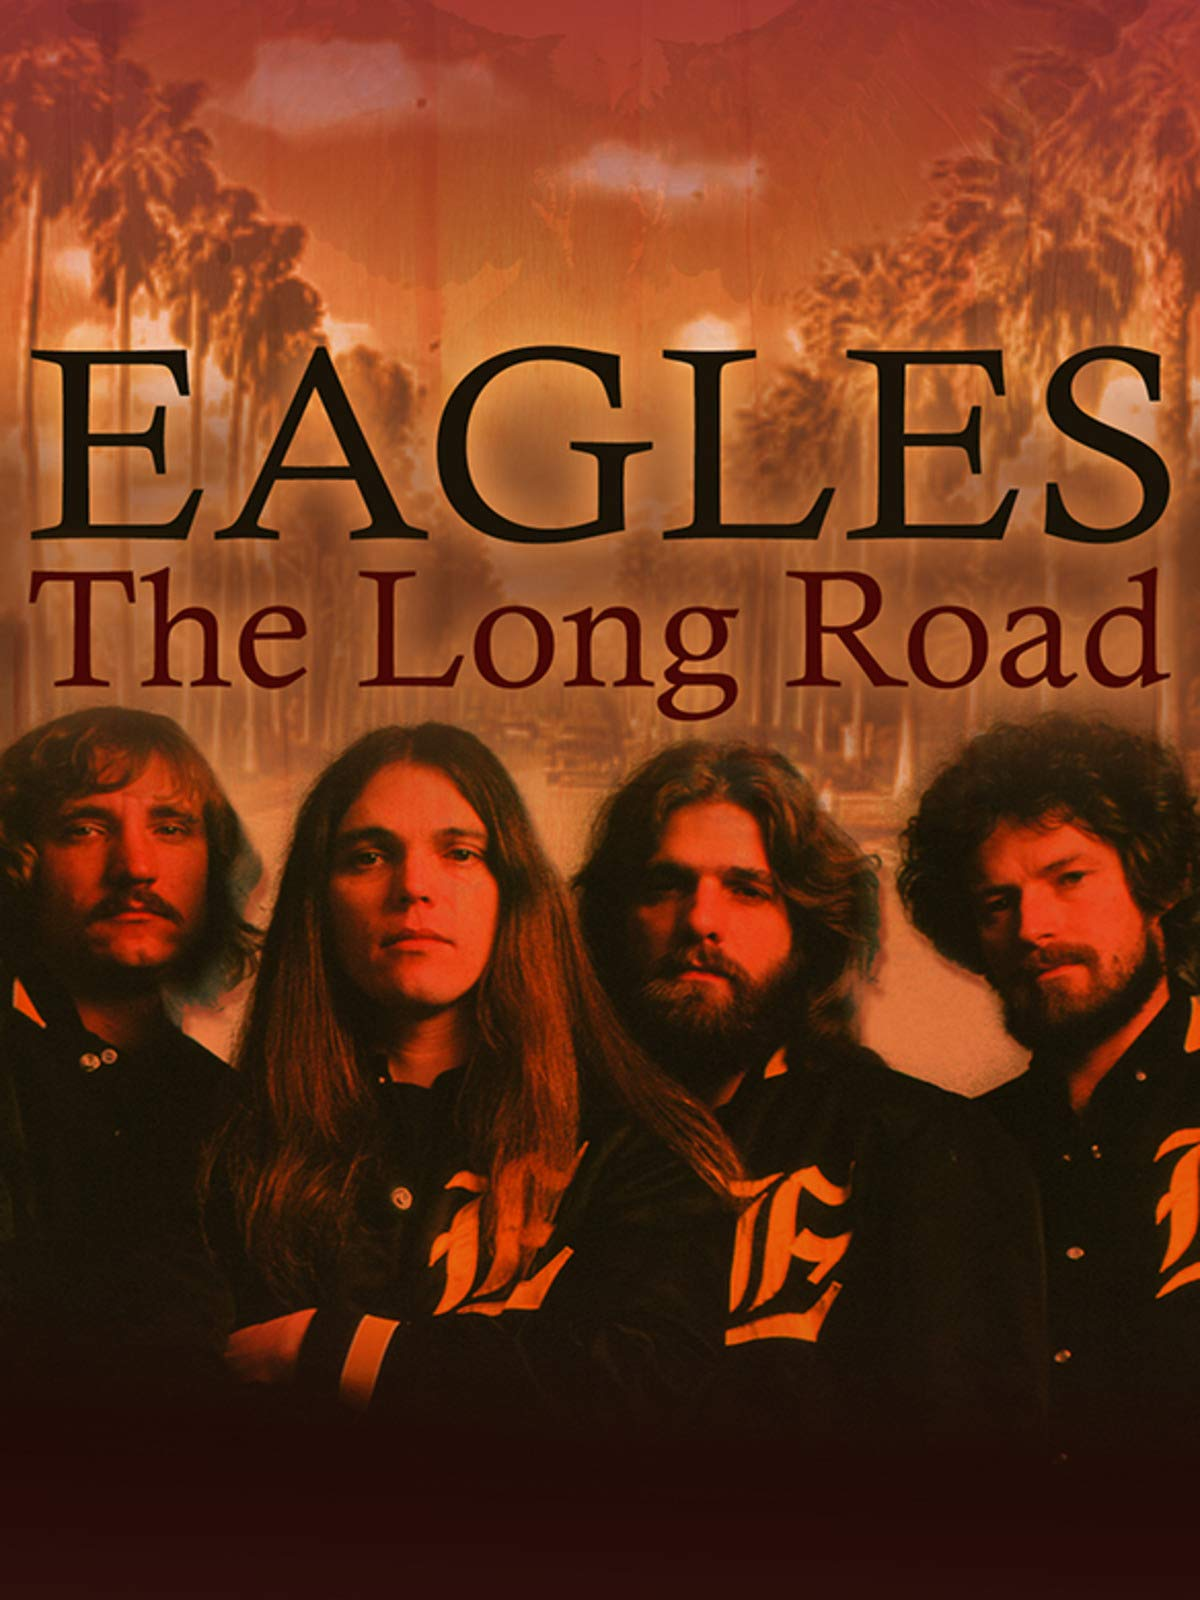 Eagles: The Long Road